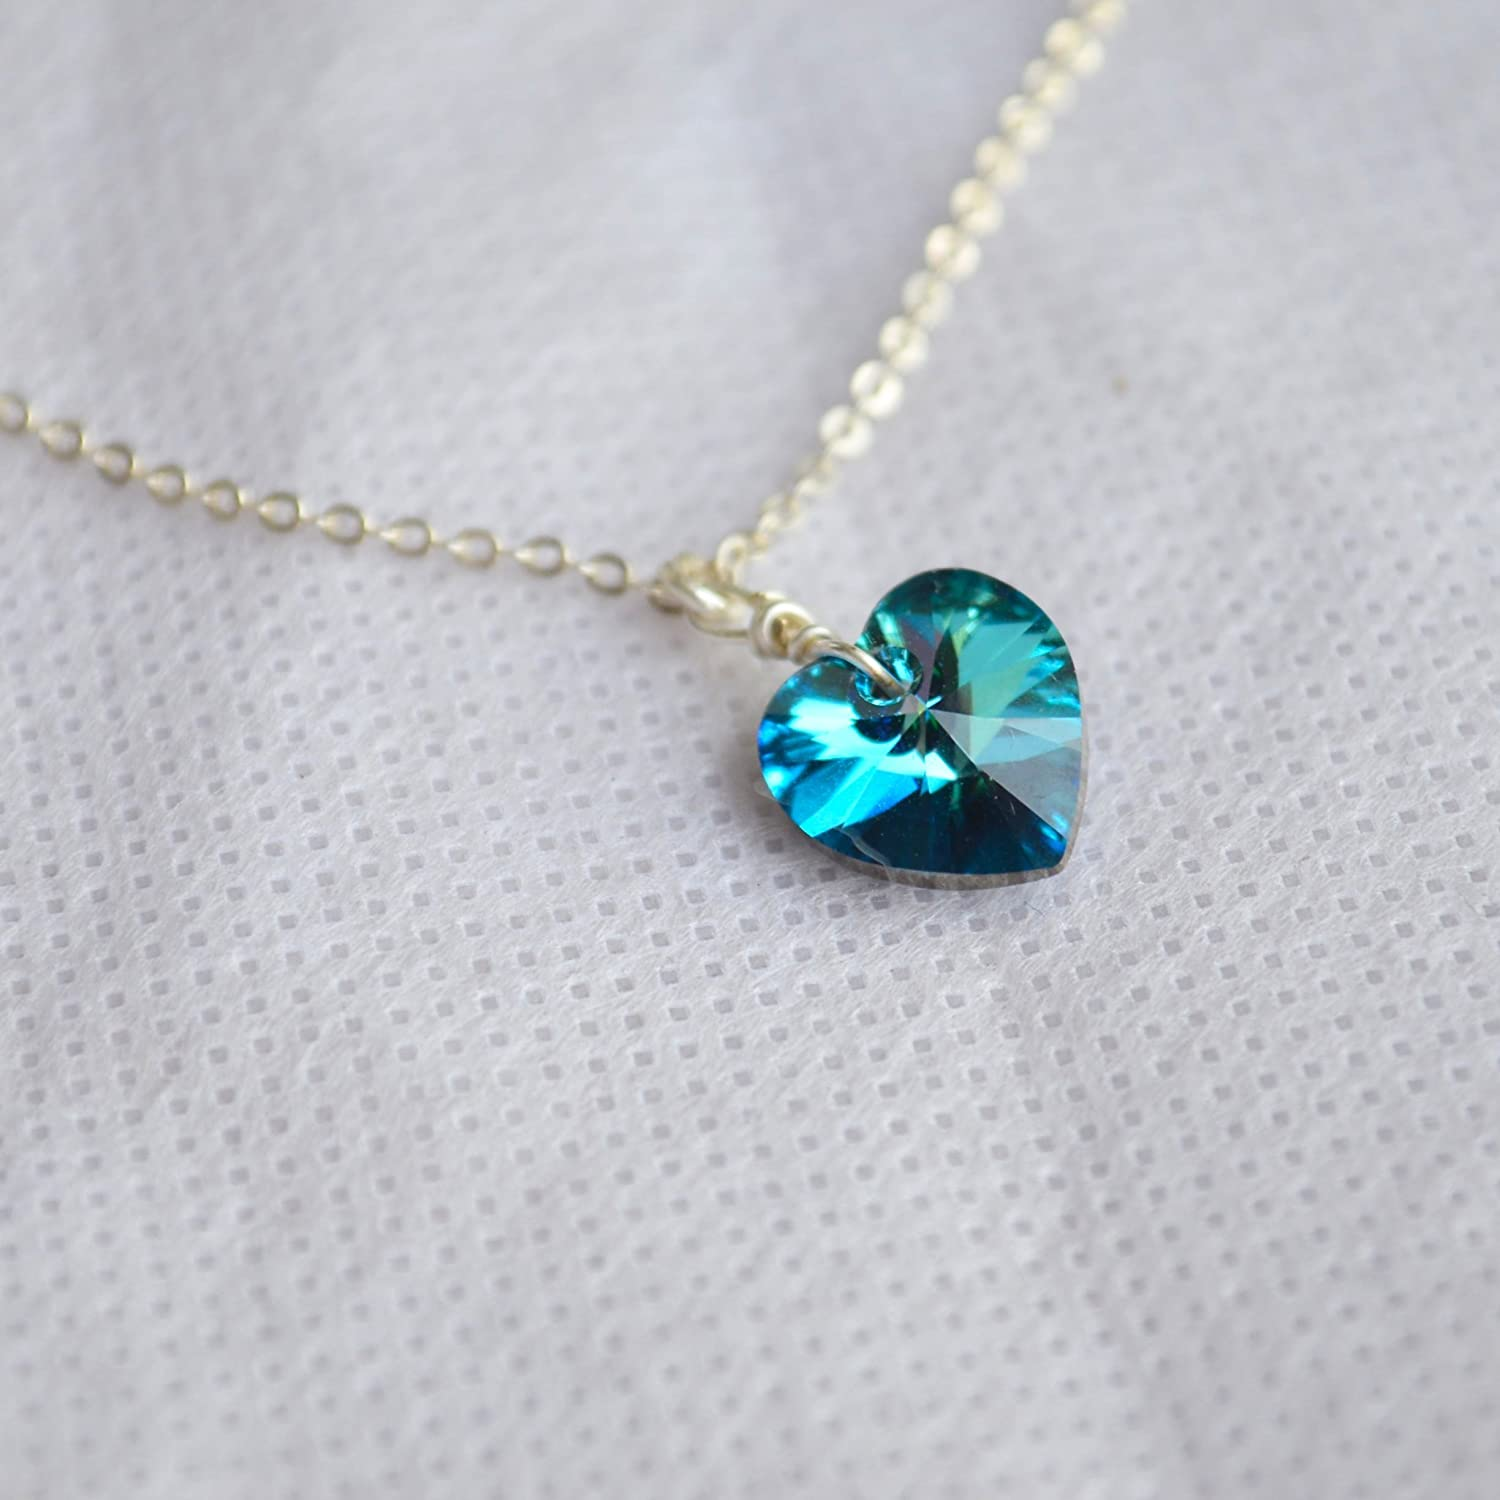 Heart Of The Ocean Love Rhinestone 925 Sterling Silver Necklace 17.7 Length